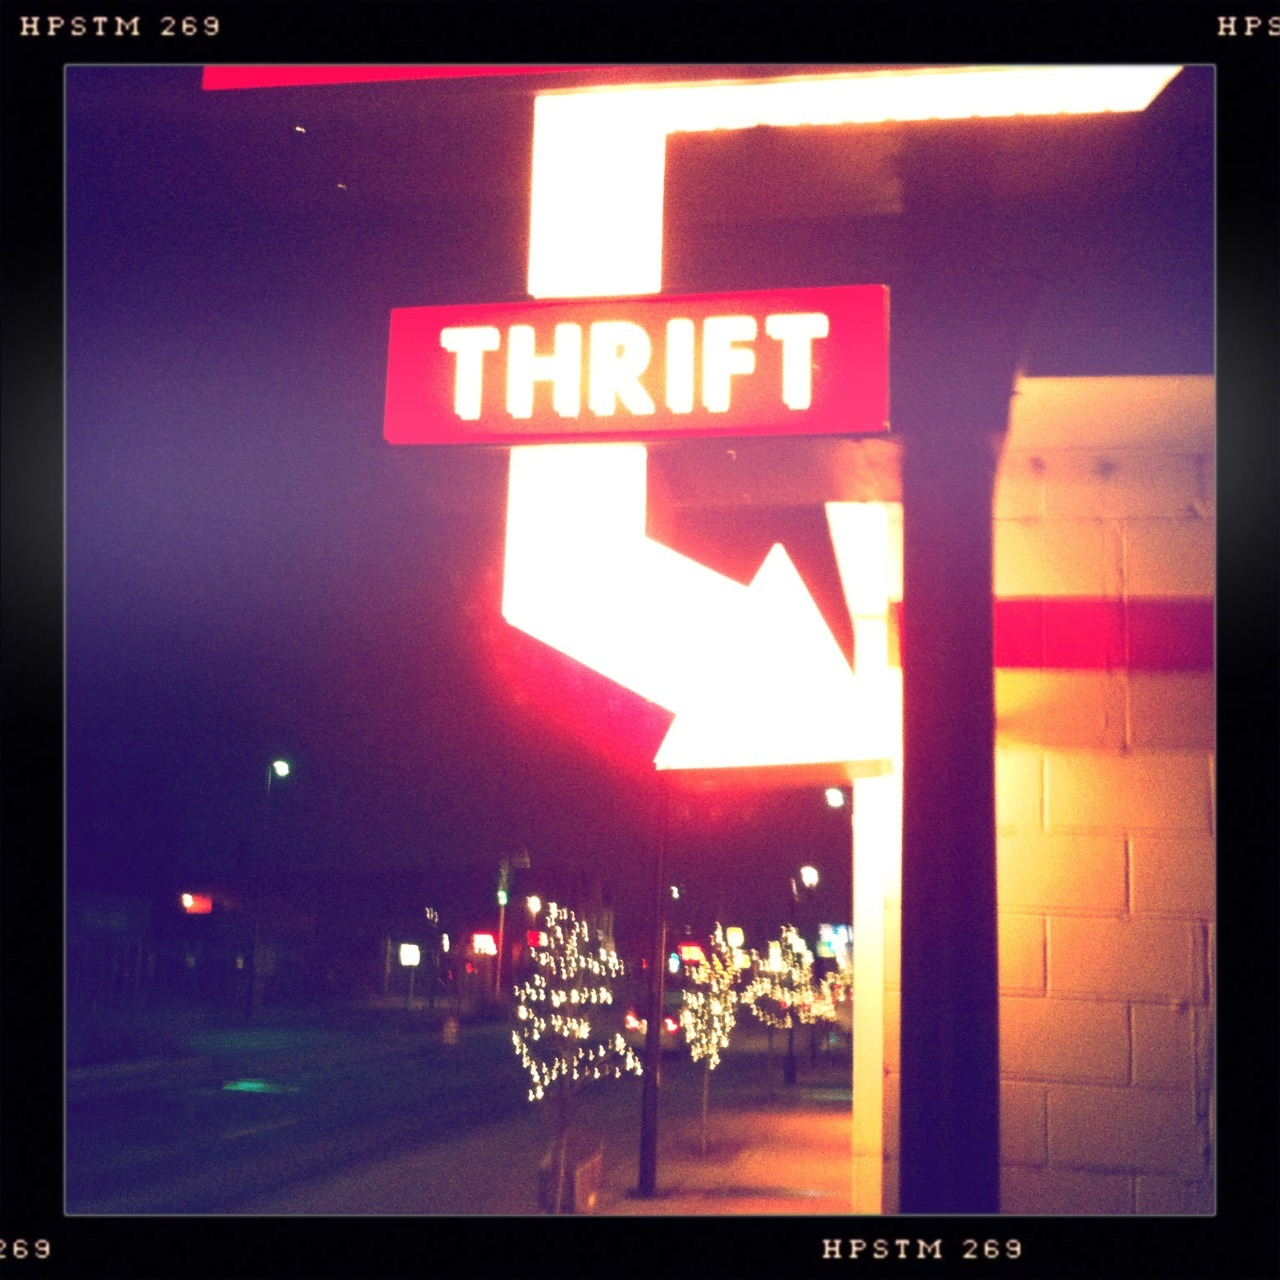 Thrift Taken with Hipstamatic, Lucas AB2 Lens, Pistil Film, No Flash.